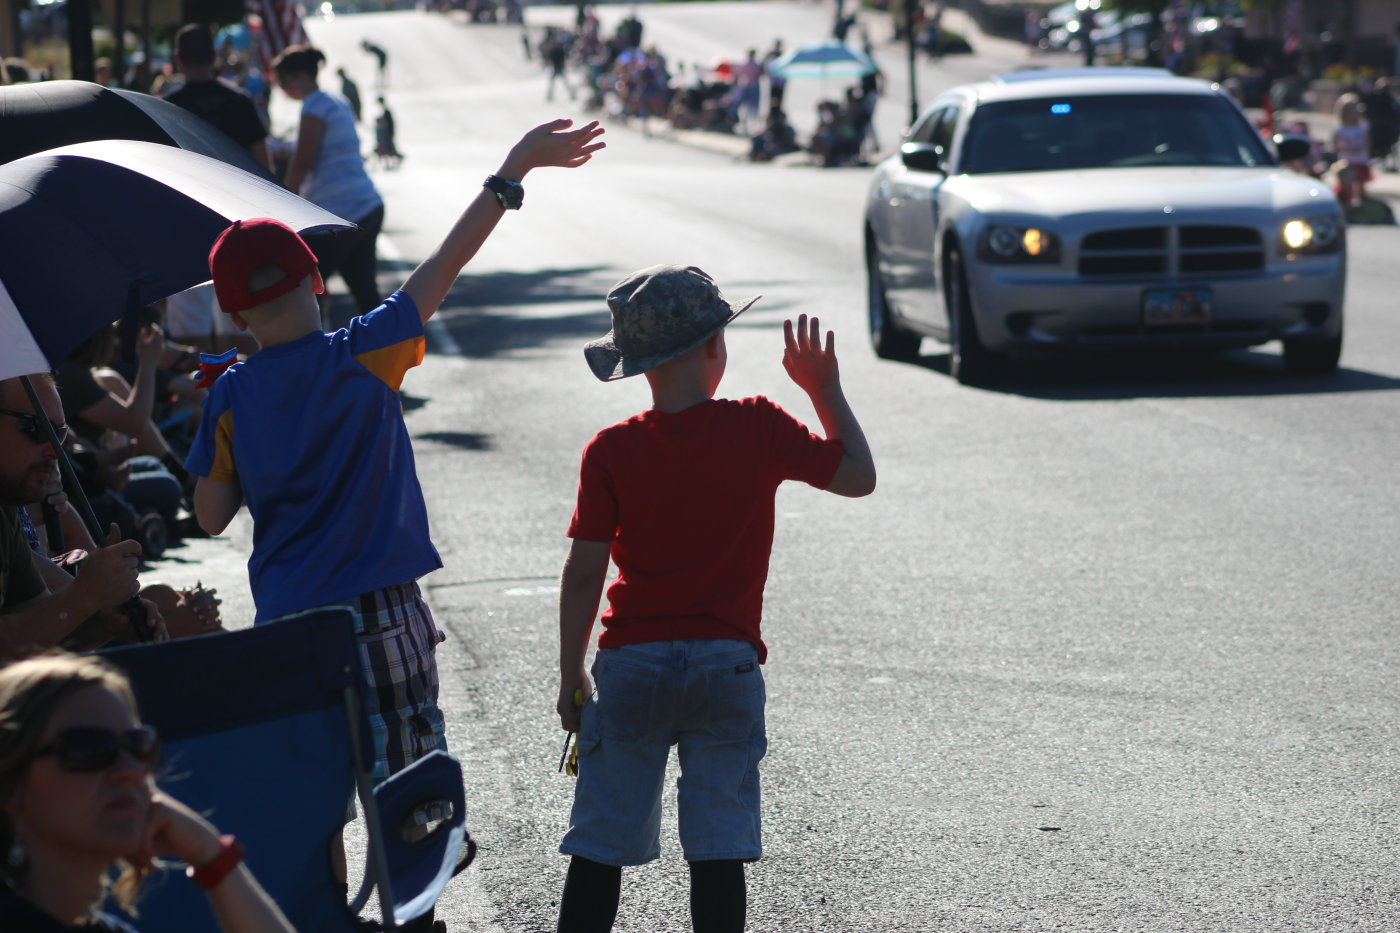 At the 2016 Days of '47 Pioneer Day Parade in Washington City, Utah, July 23, 2016 | Photo by Mori Kessler, St. George News